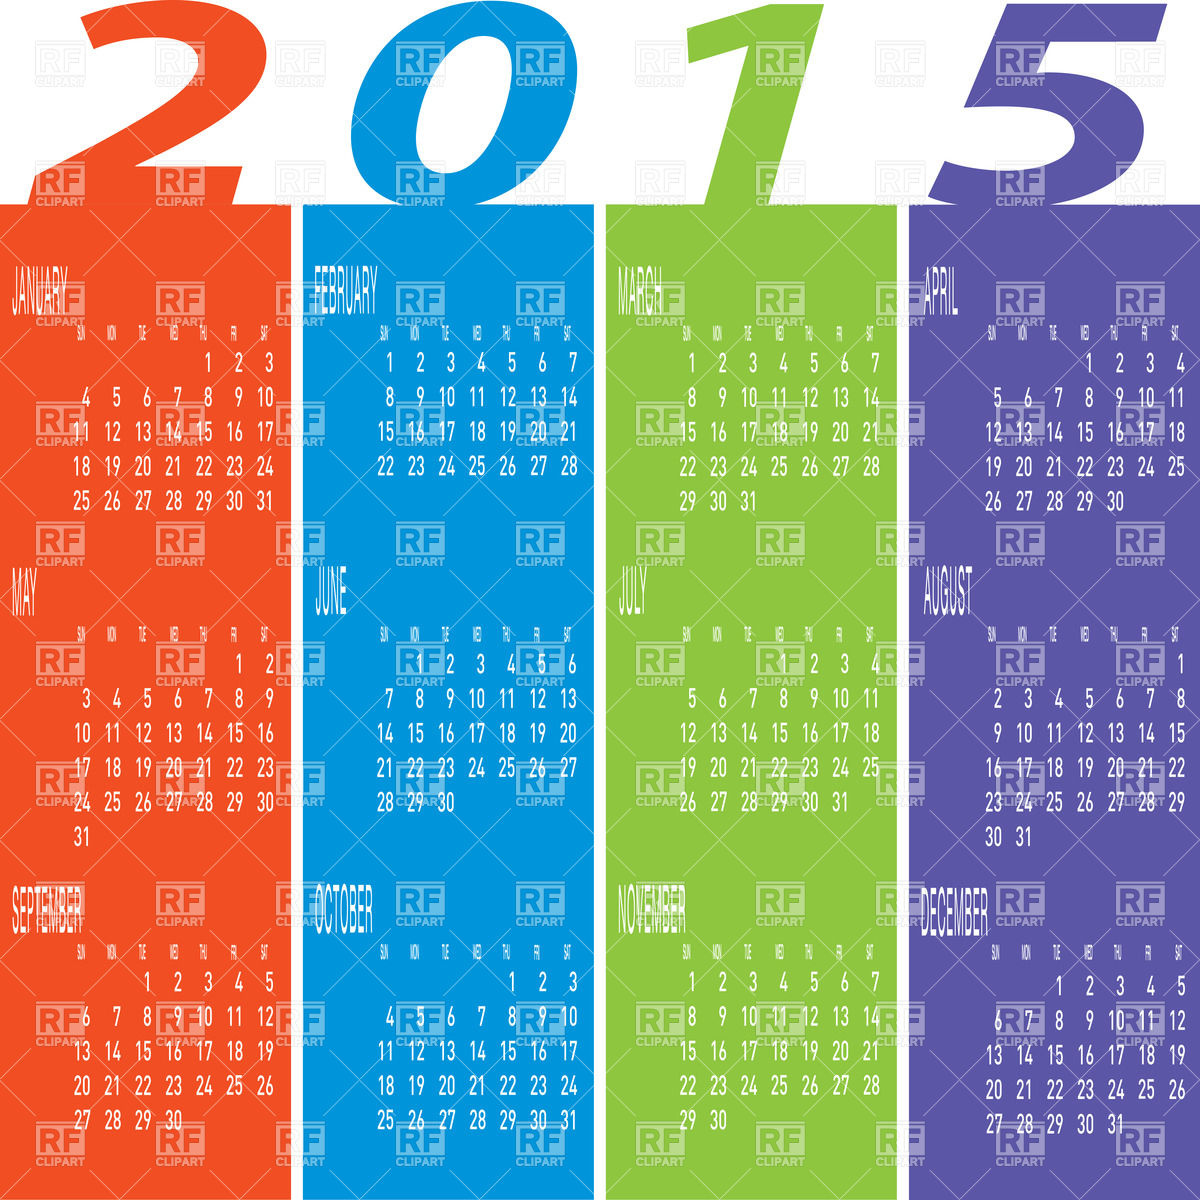 1 Year Calender Clipart.